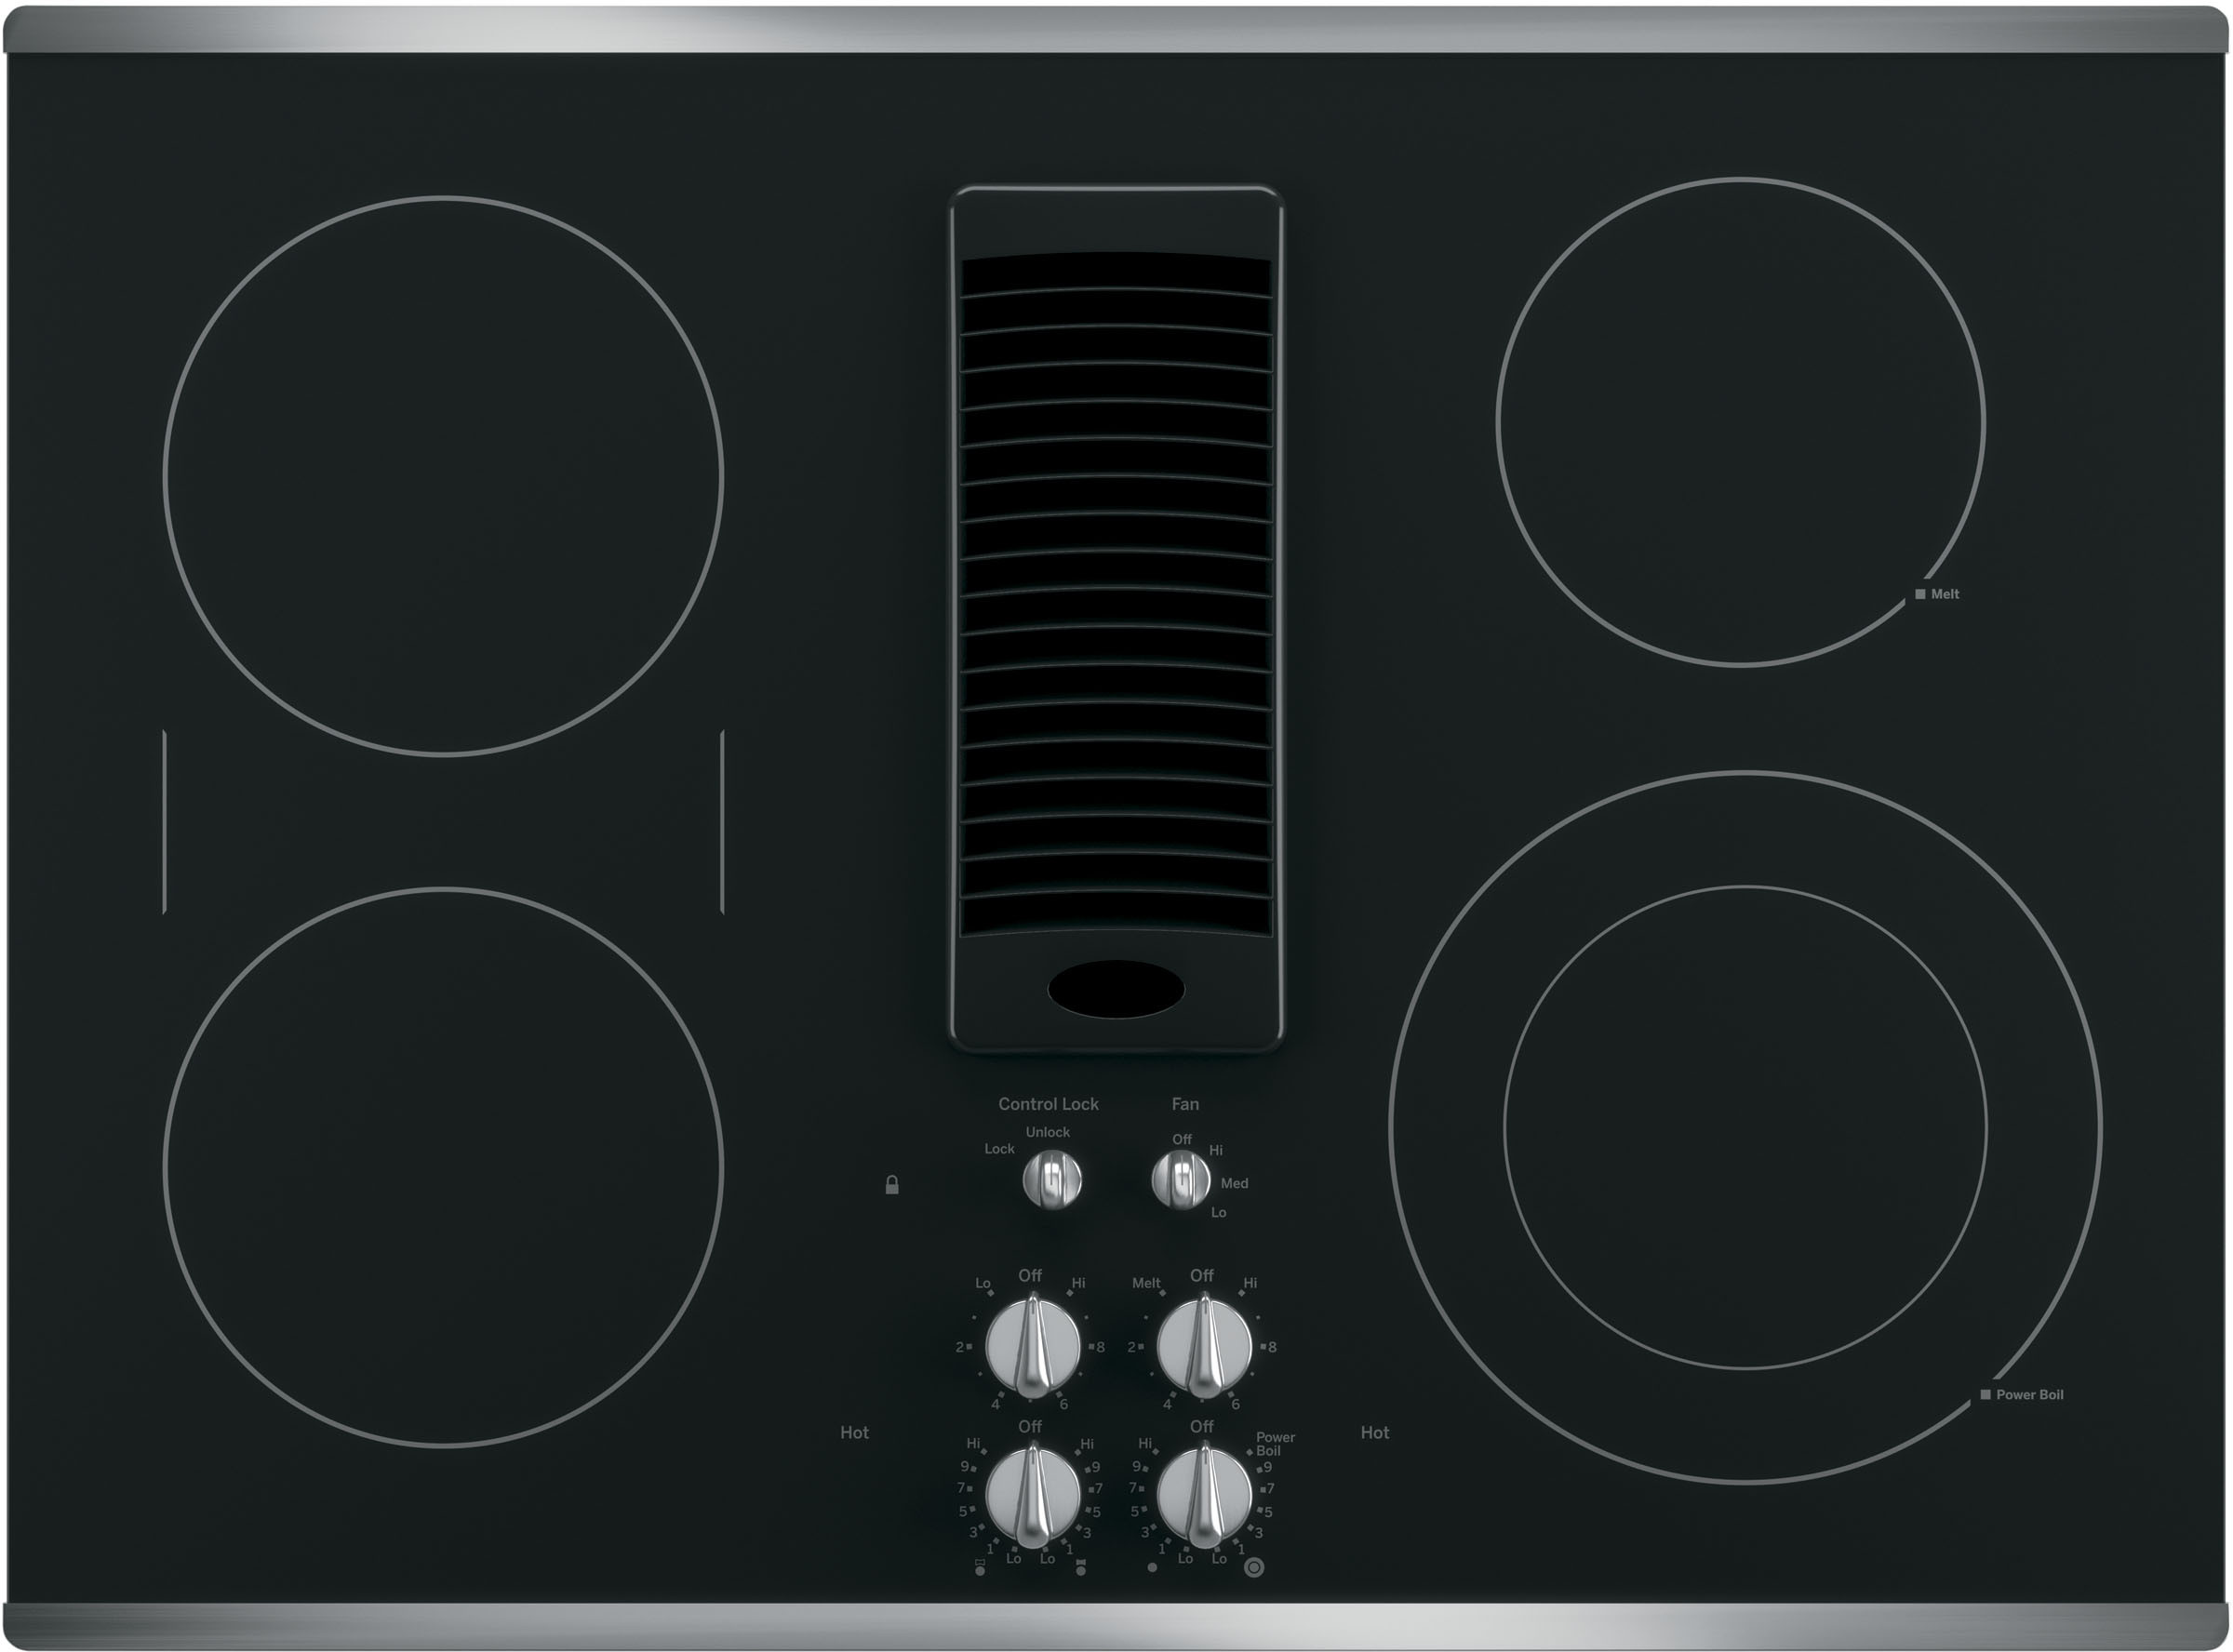 3-Speed Downdraft Exhaust System Bridge Element and 9//6 Inch Power Boil GE PP9830DJBB 30 Inch Smoothtop Electric Cooktop with 4 Burners